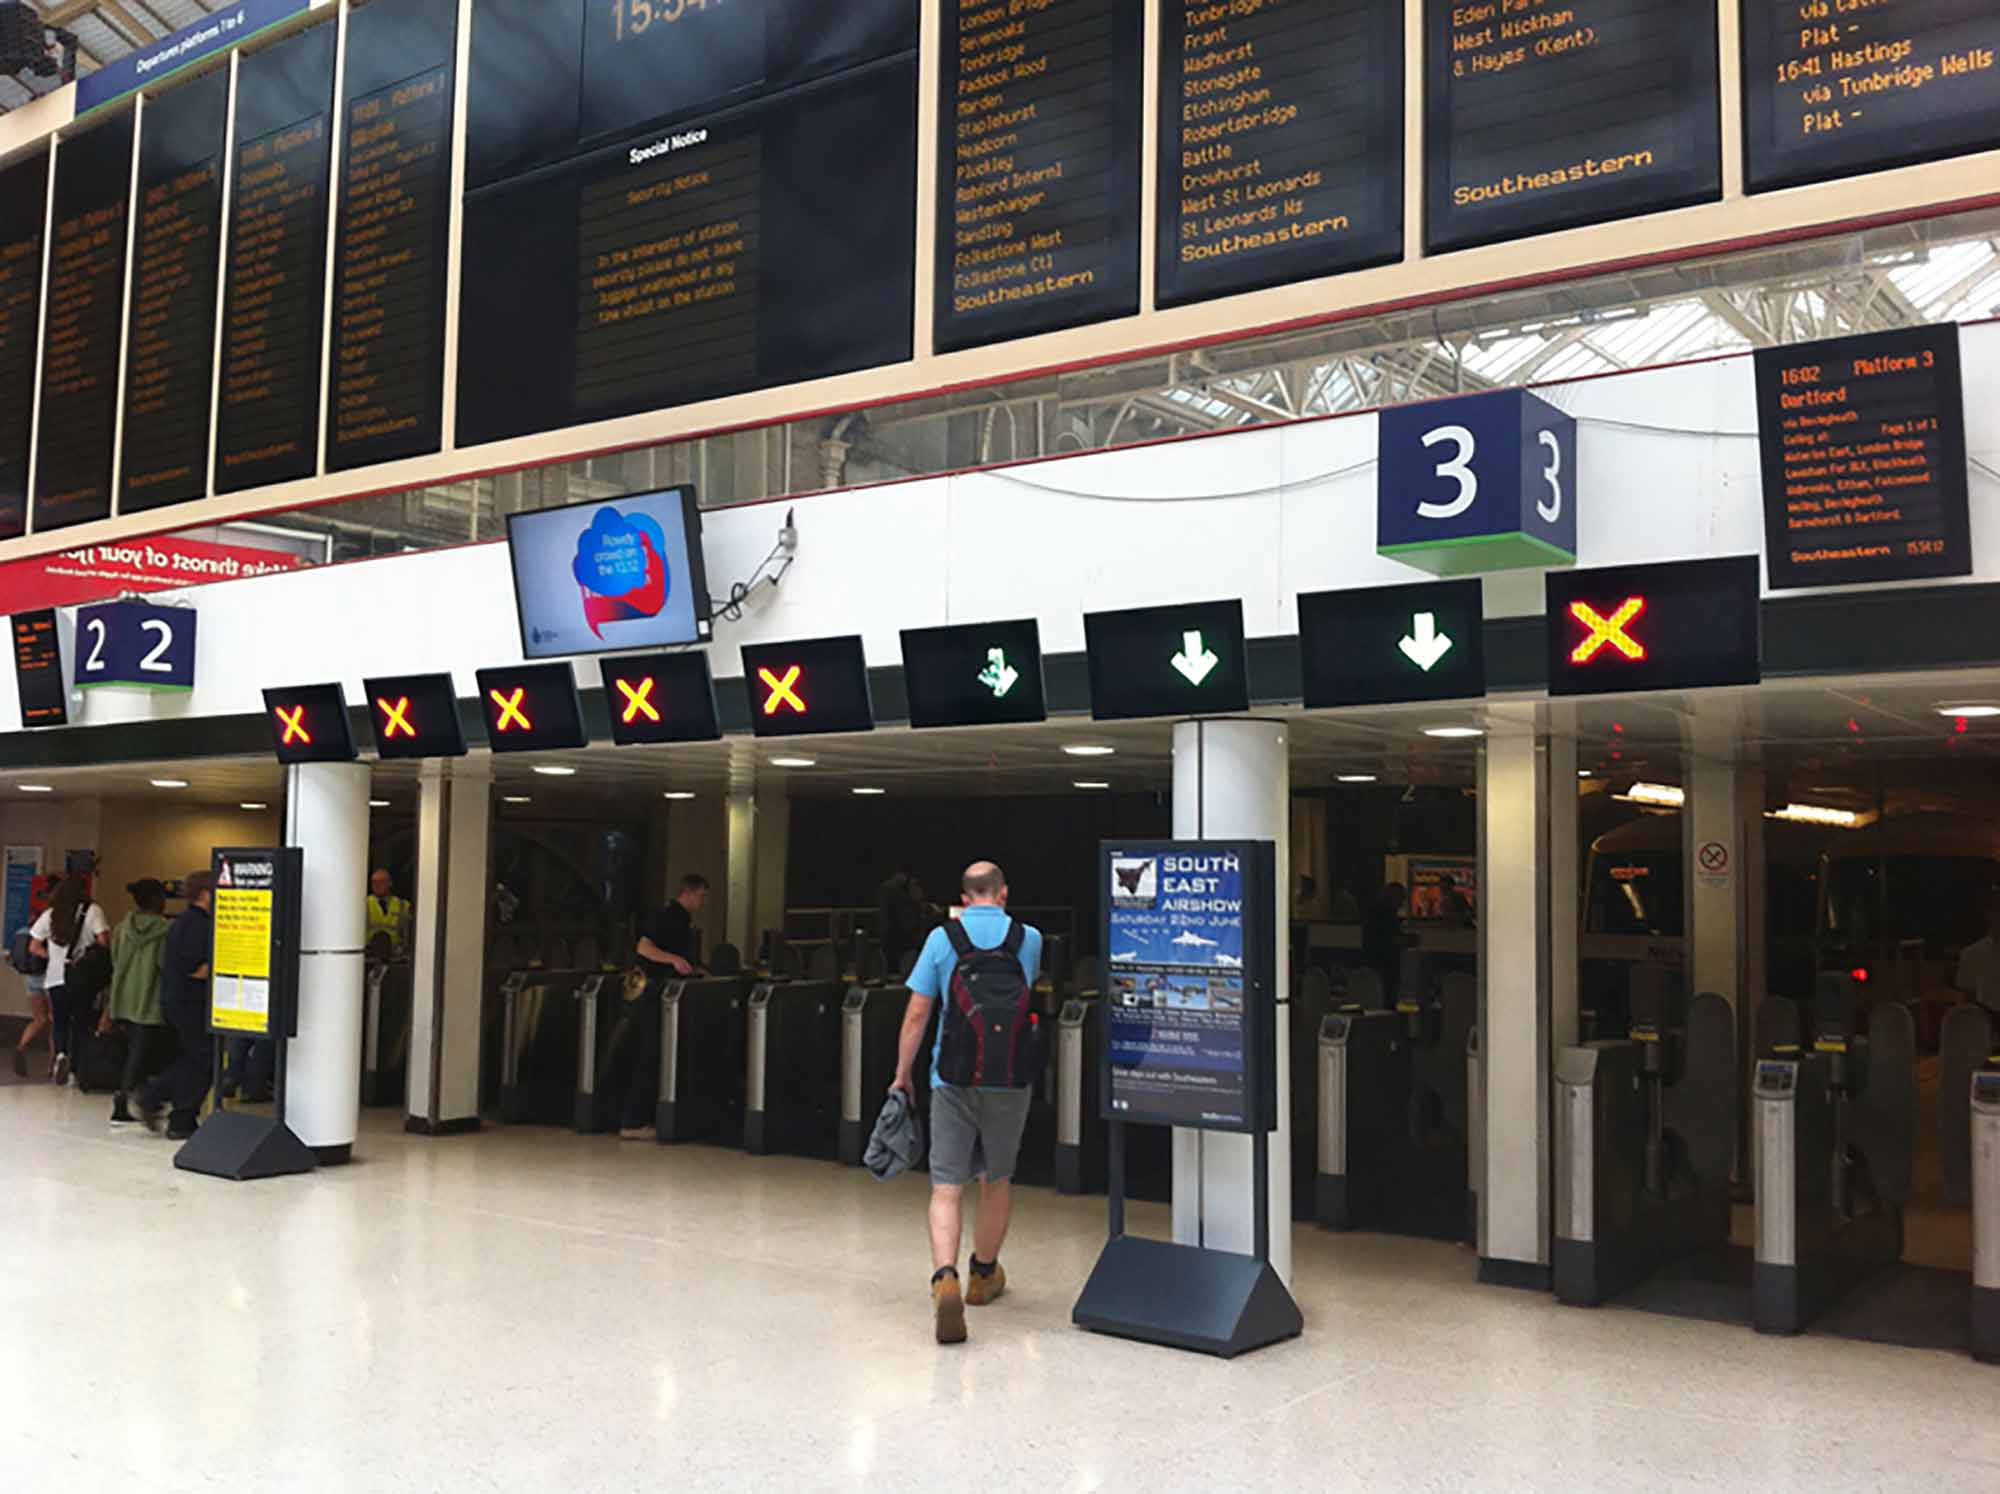 Charing-Cross---View-One-JPEG-SMALL.jpg